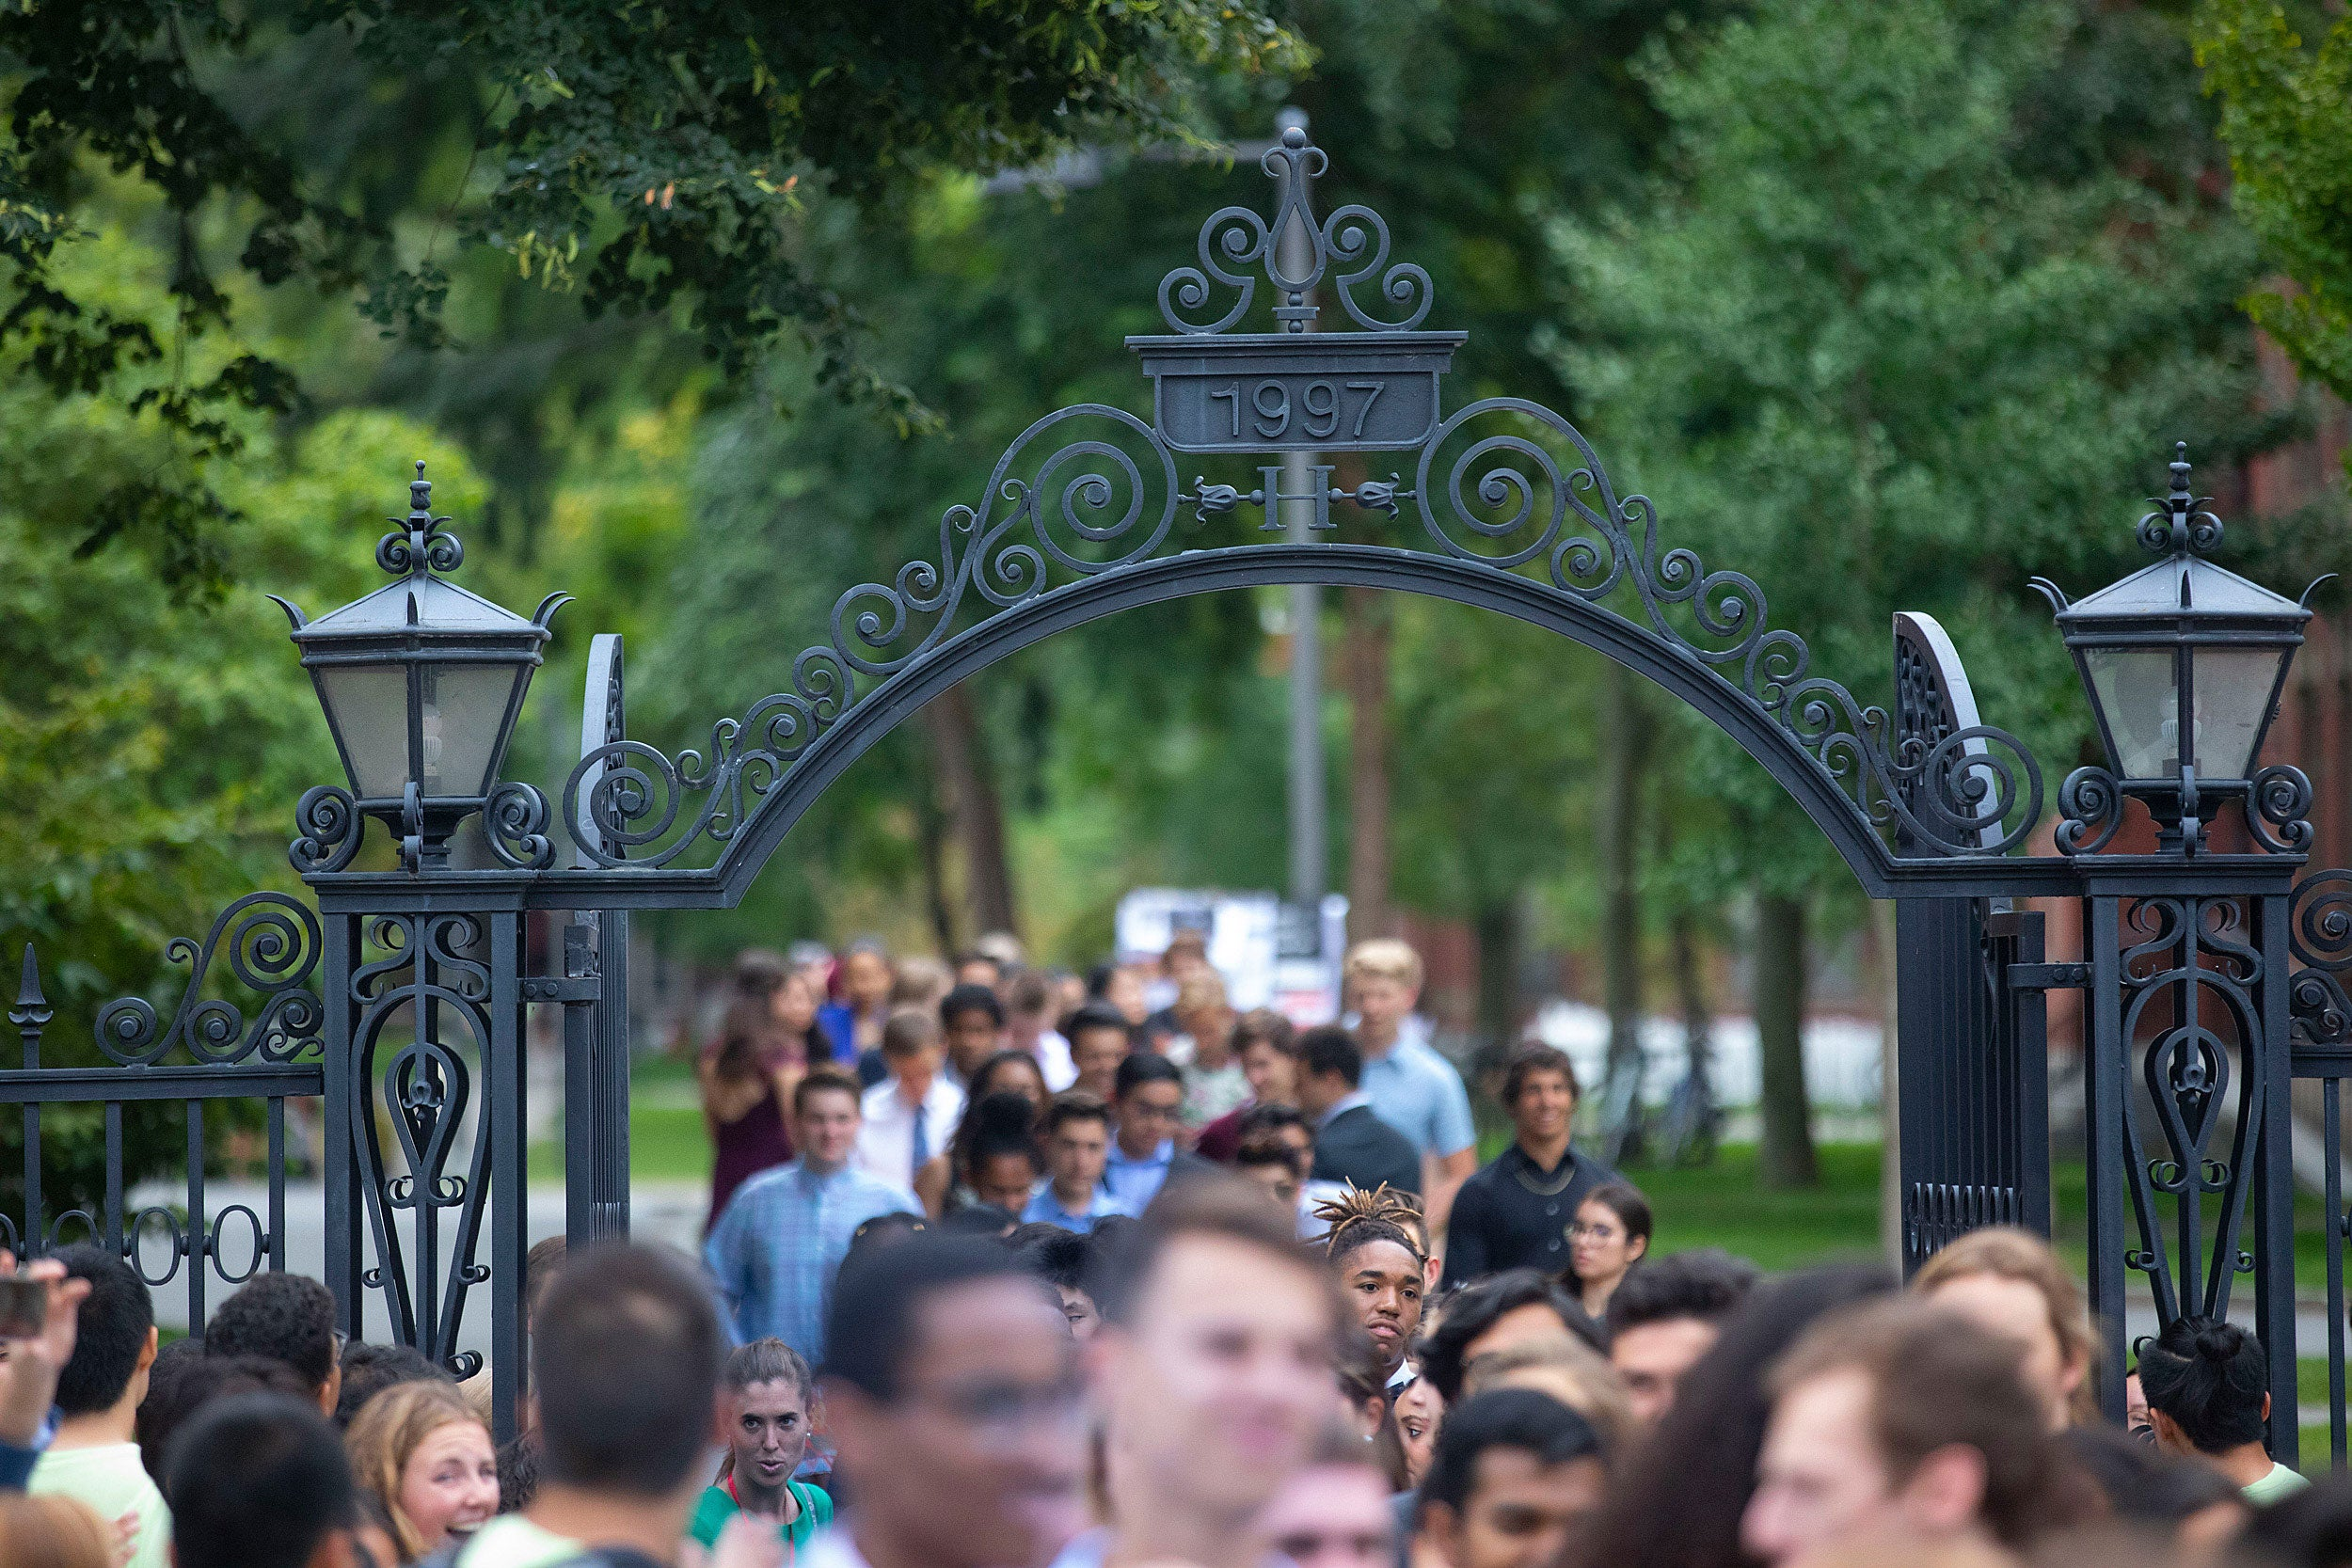 A large crowd of Harvard students walking through a Harvard gate.